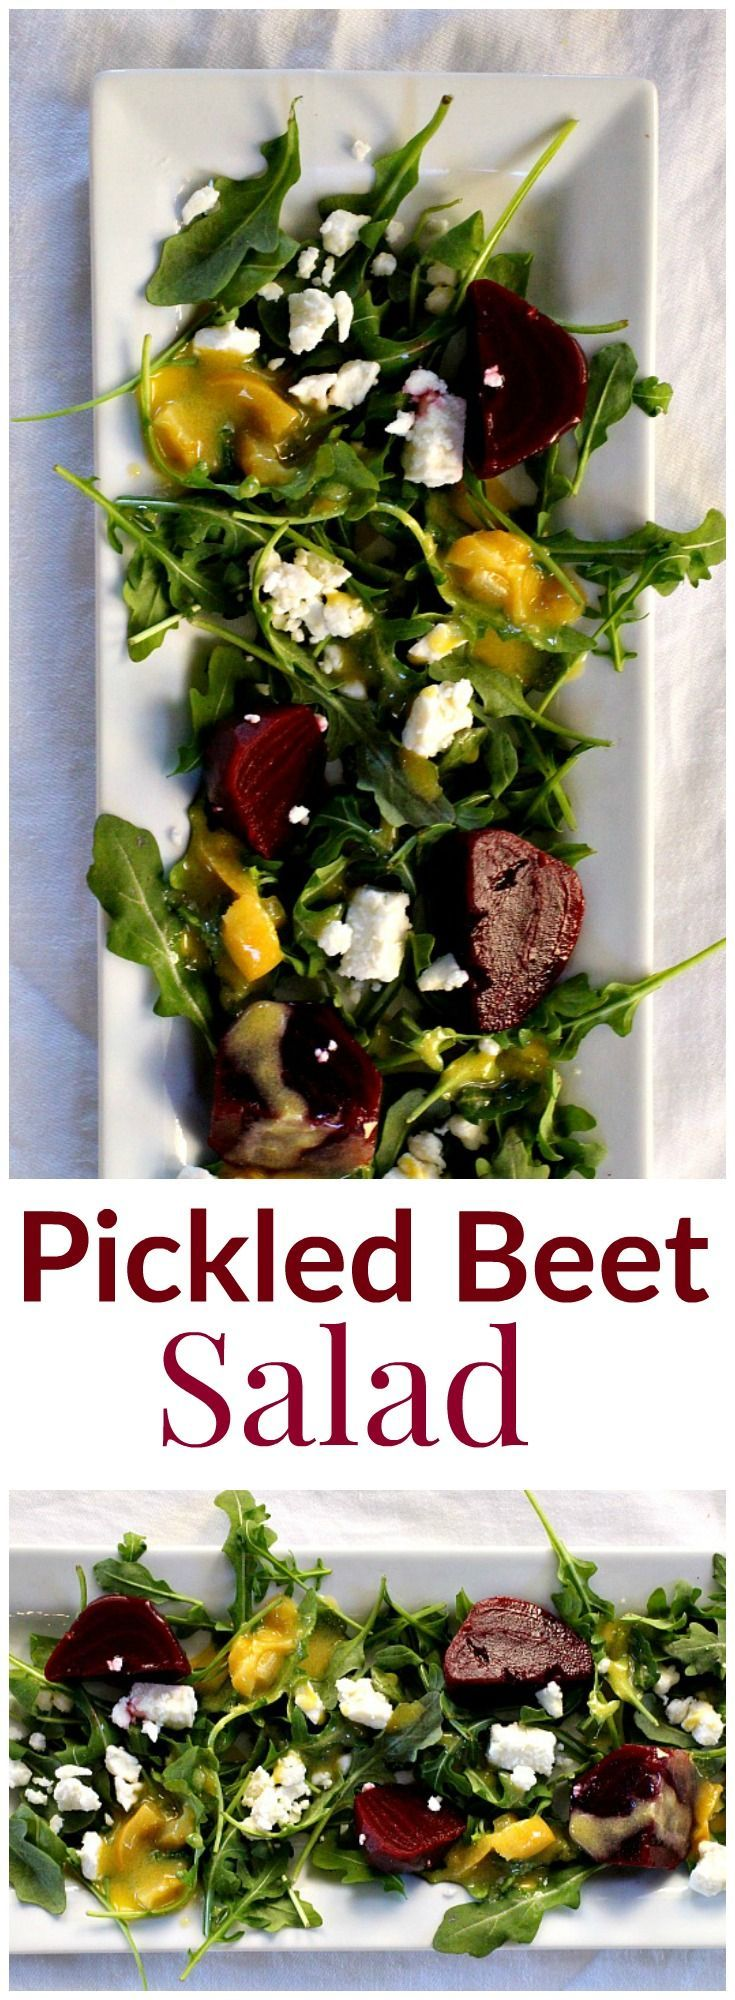 Pickled Beet Salad With Arugula And Feta Recipe Pickled Beet